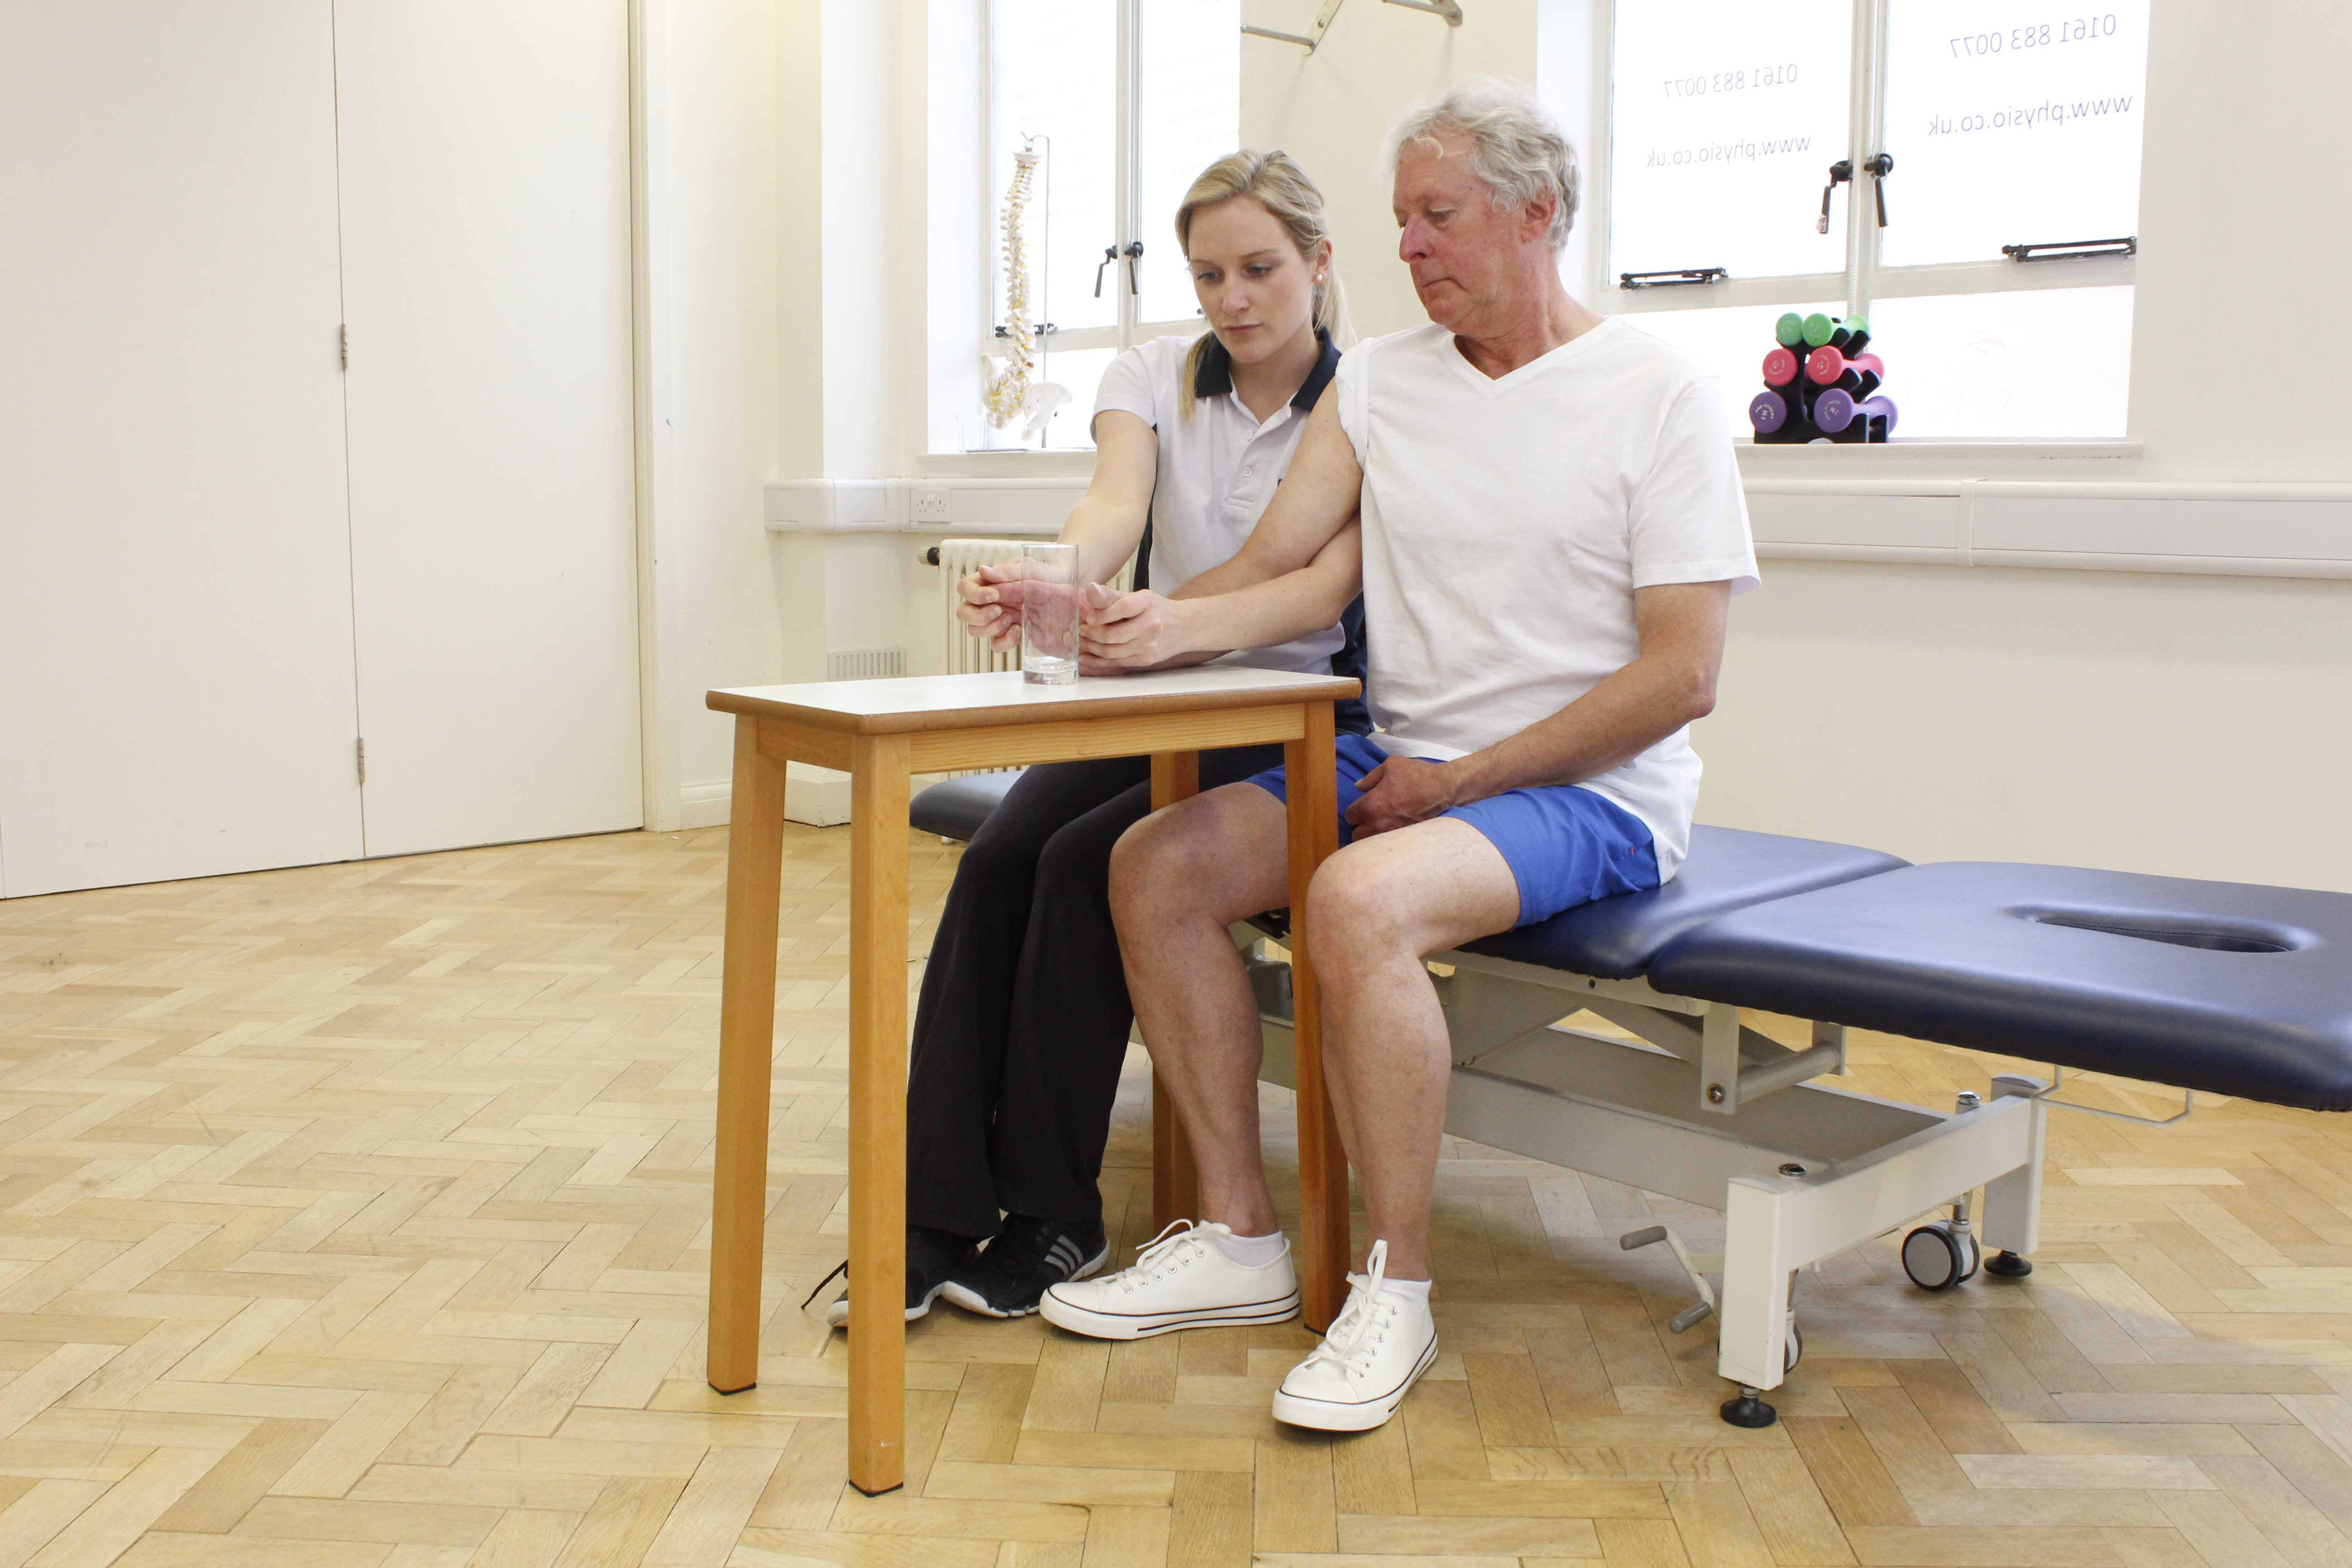 Functional rehabilitation exercises for the hand and wrist guided by a specialist physiotherapist